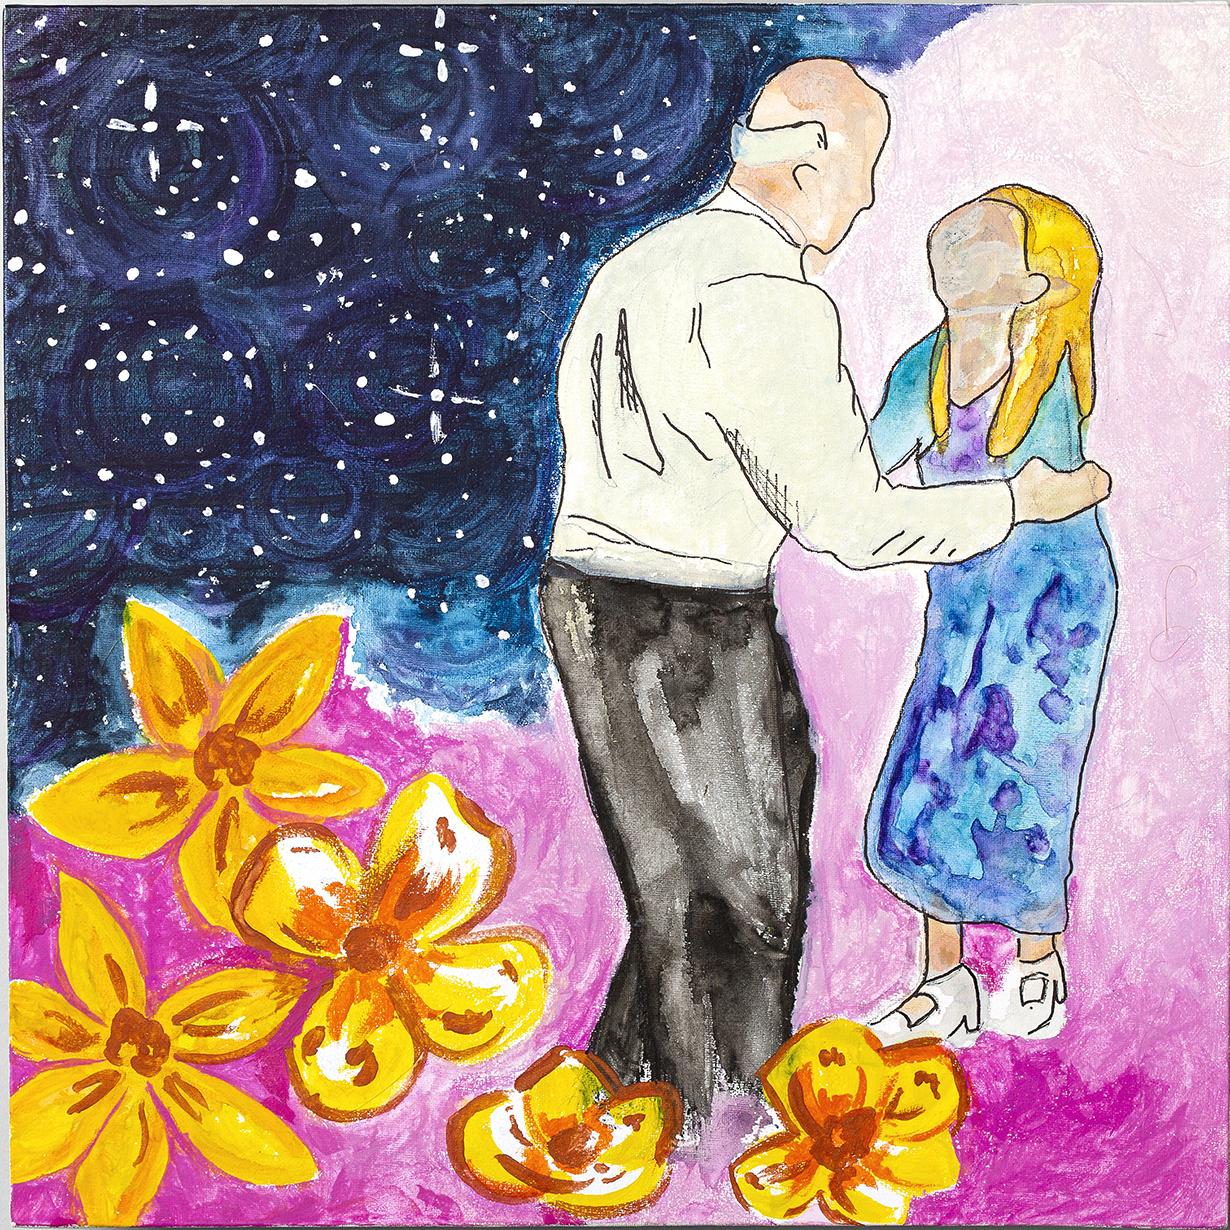 MICHELLE TERSOLO, NONO: This is a painting of a photo that was taken at my grandparents' 50th Wedding Anniversary. We lost my Grandfather to MDS in 2012, but I like to think he is still looking down from his place in the stars watching over me.